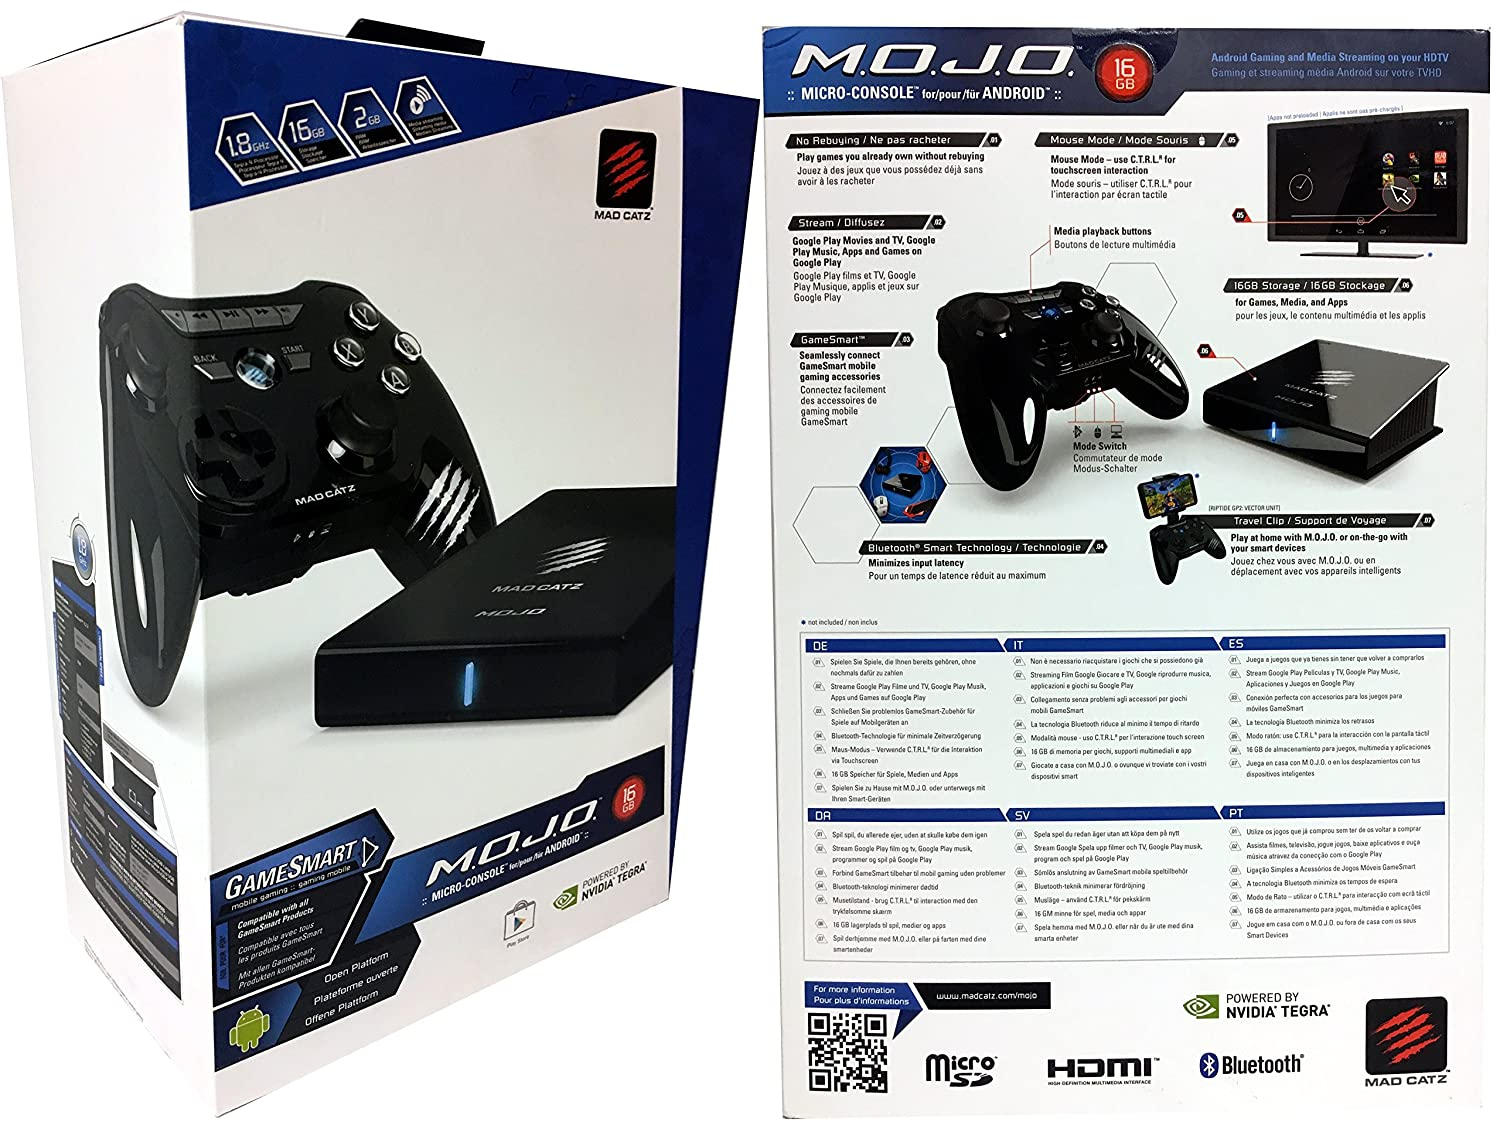 Mad Catz MOJO Micro-Console for Android 16GB Gaming and Media Box, Plus  Extra 16GB MicroSD Card for Expanded (32GB Bundle)